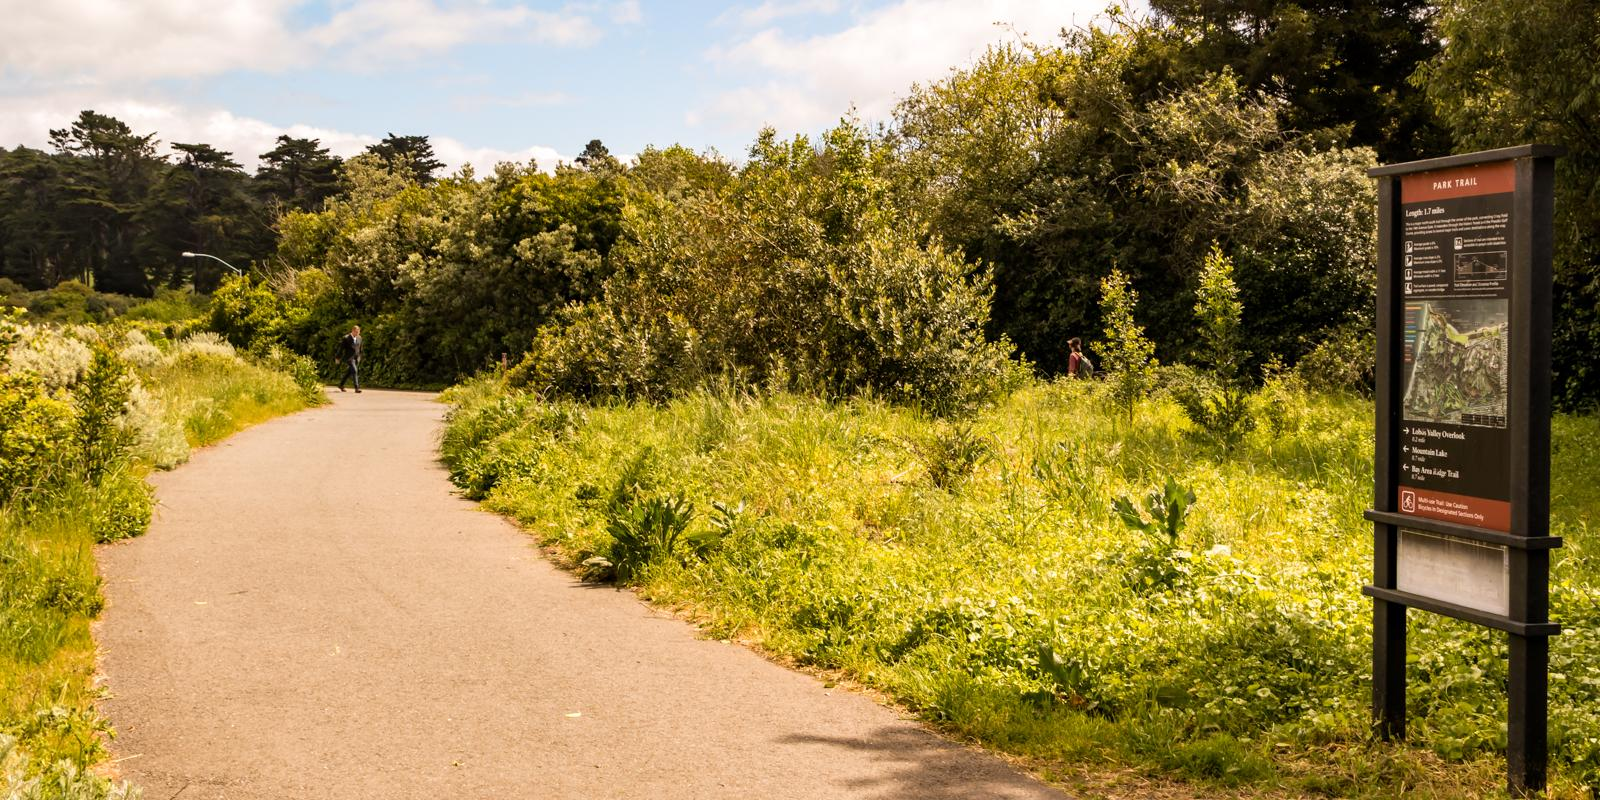 The Presidio Park Trail provides an important link in between the Presidio Promenade and the Bay Area Ridge Trail